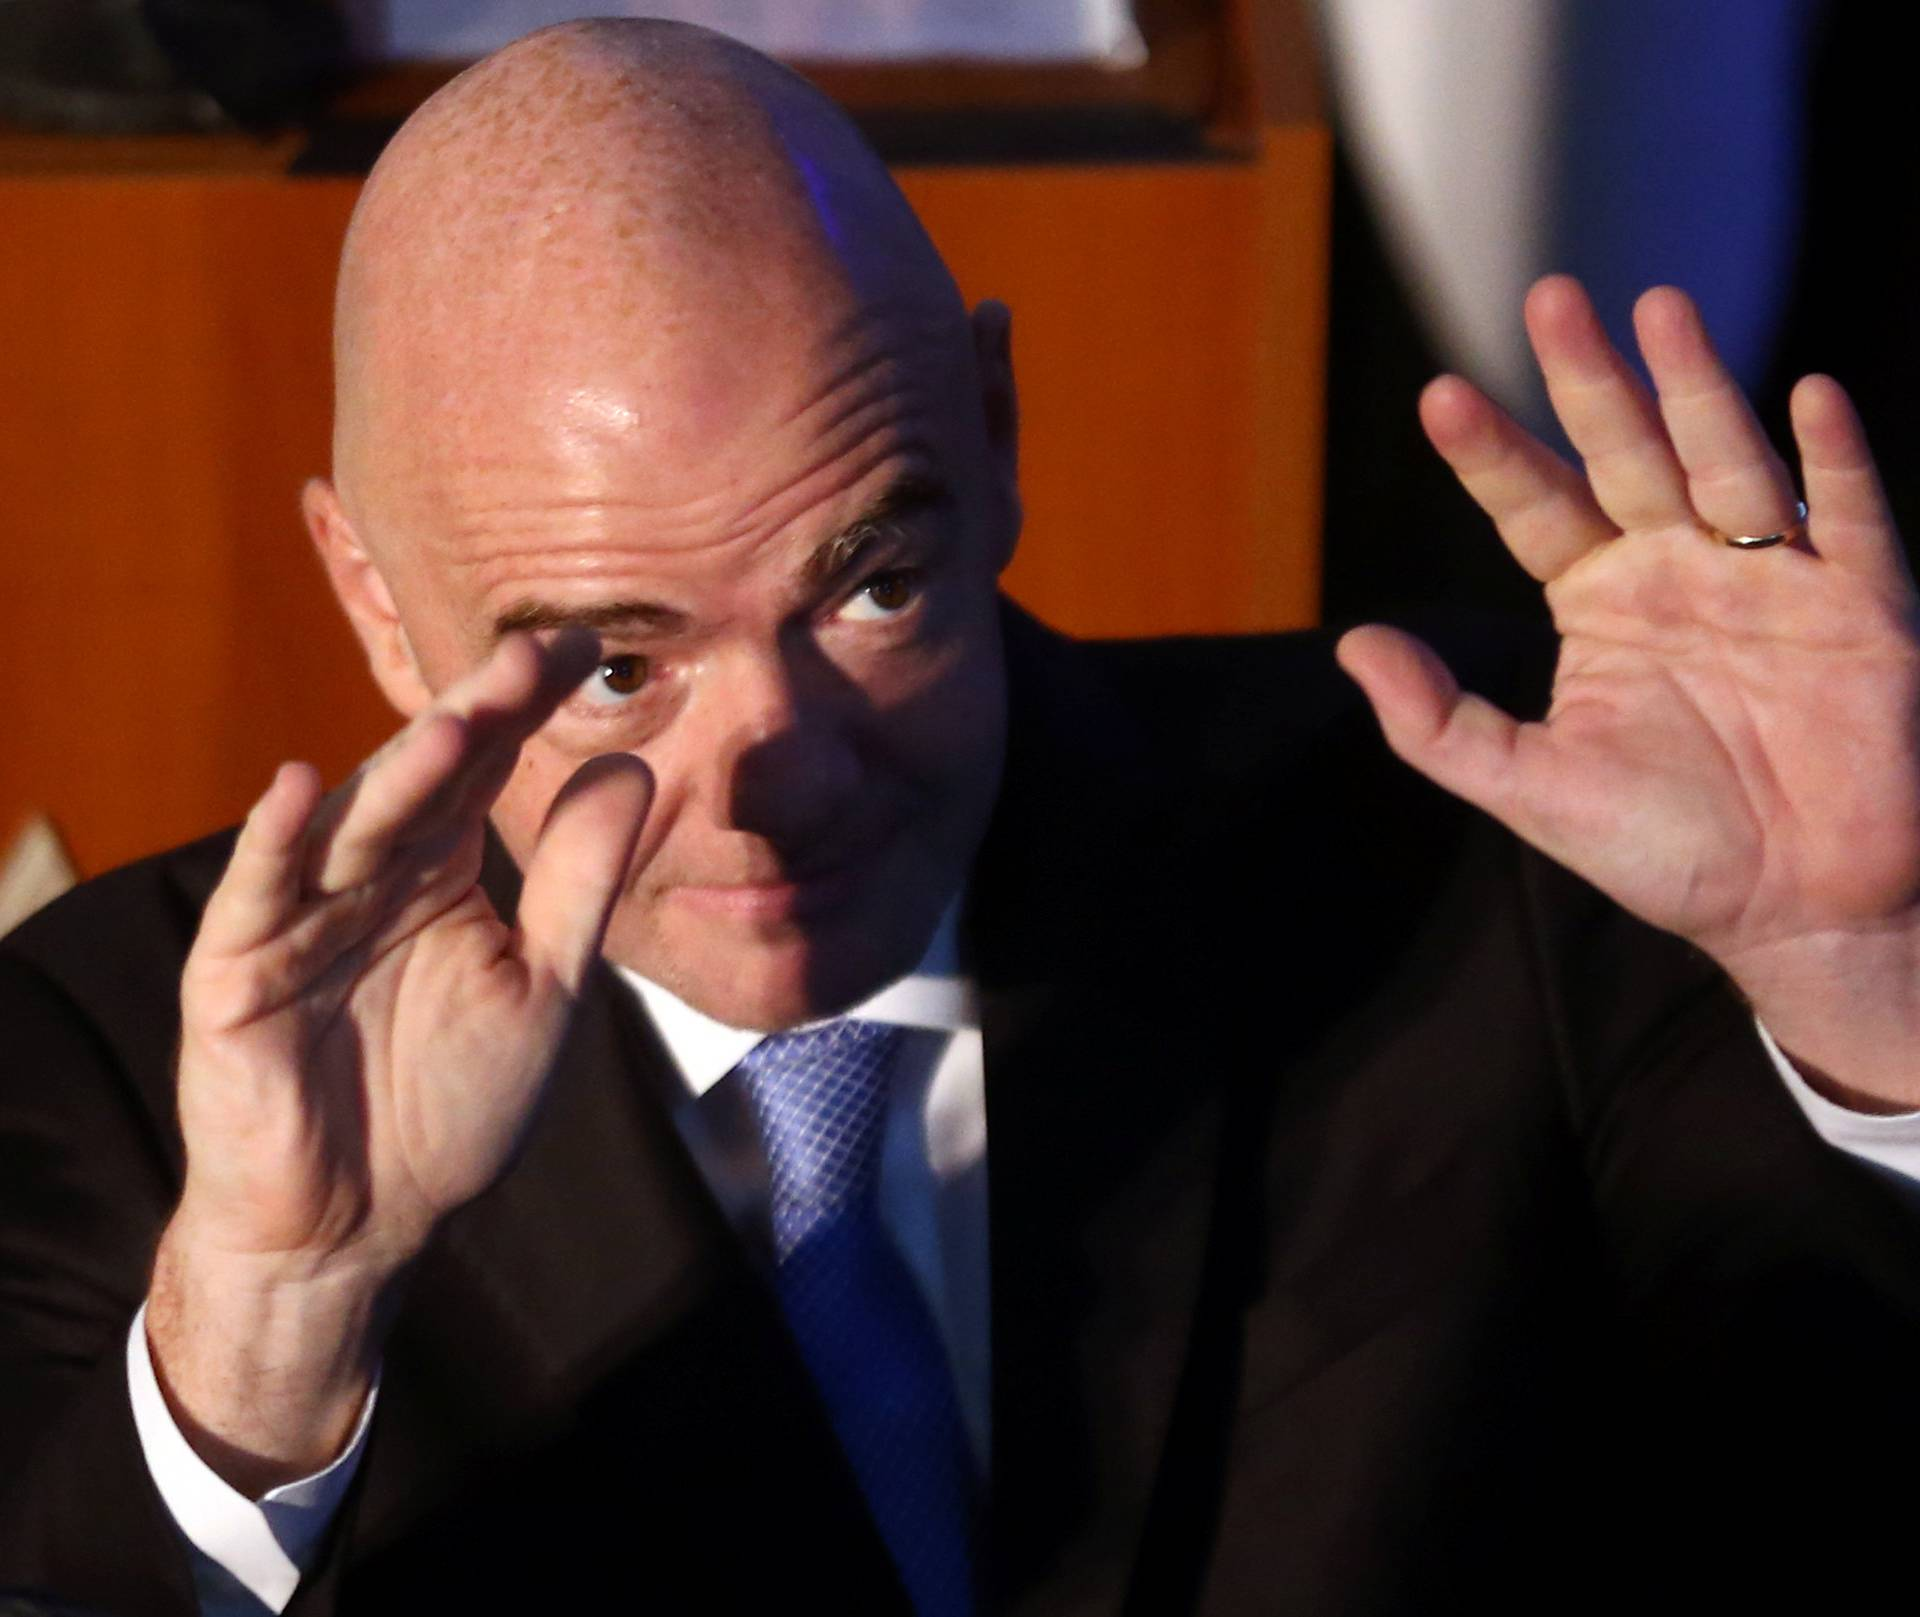 FIFA president Infantino waves as he arrives at the AFA headquarters in Buenos Aires